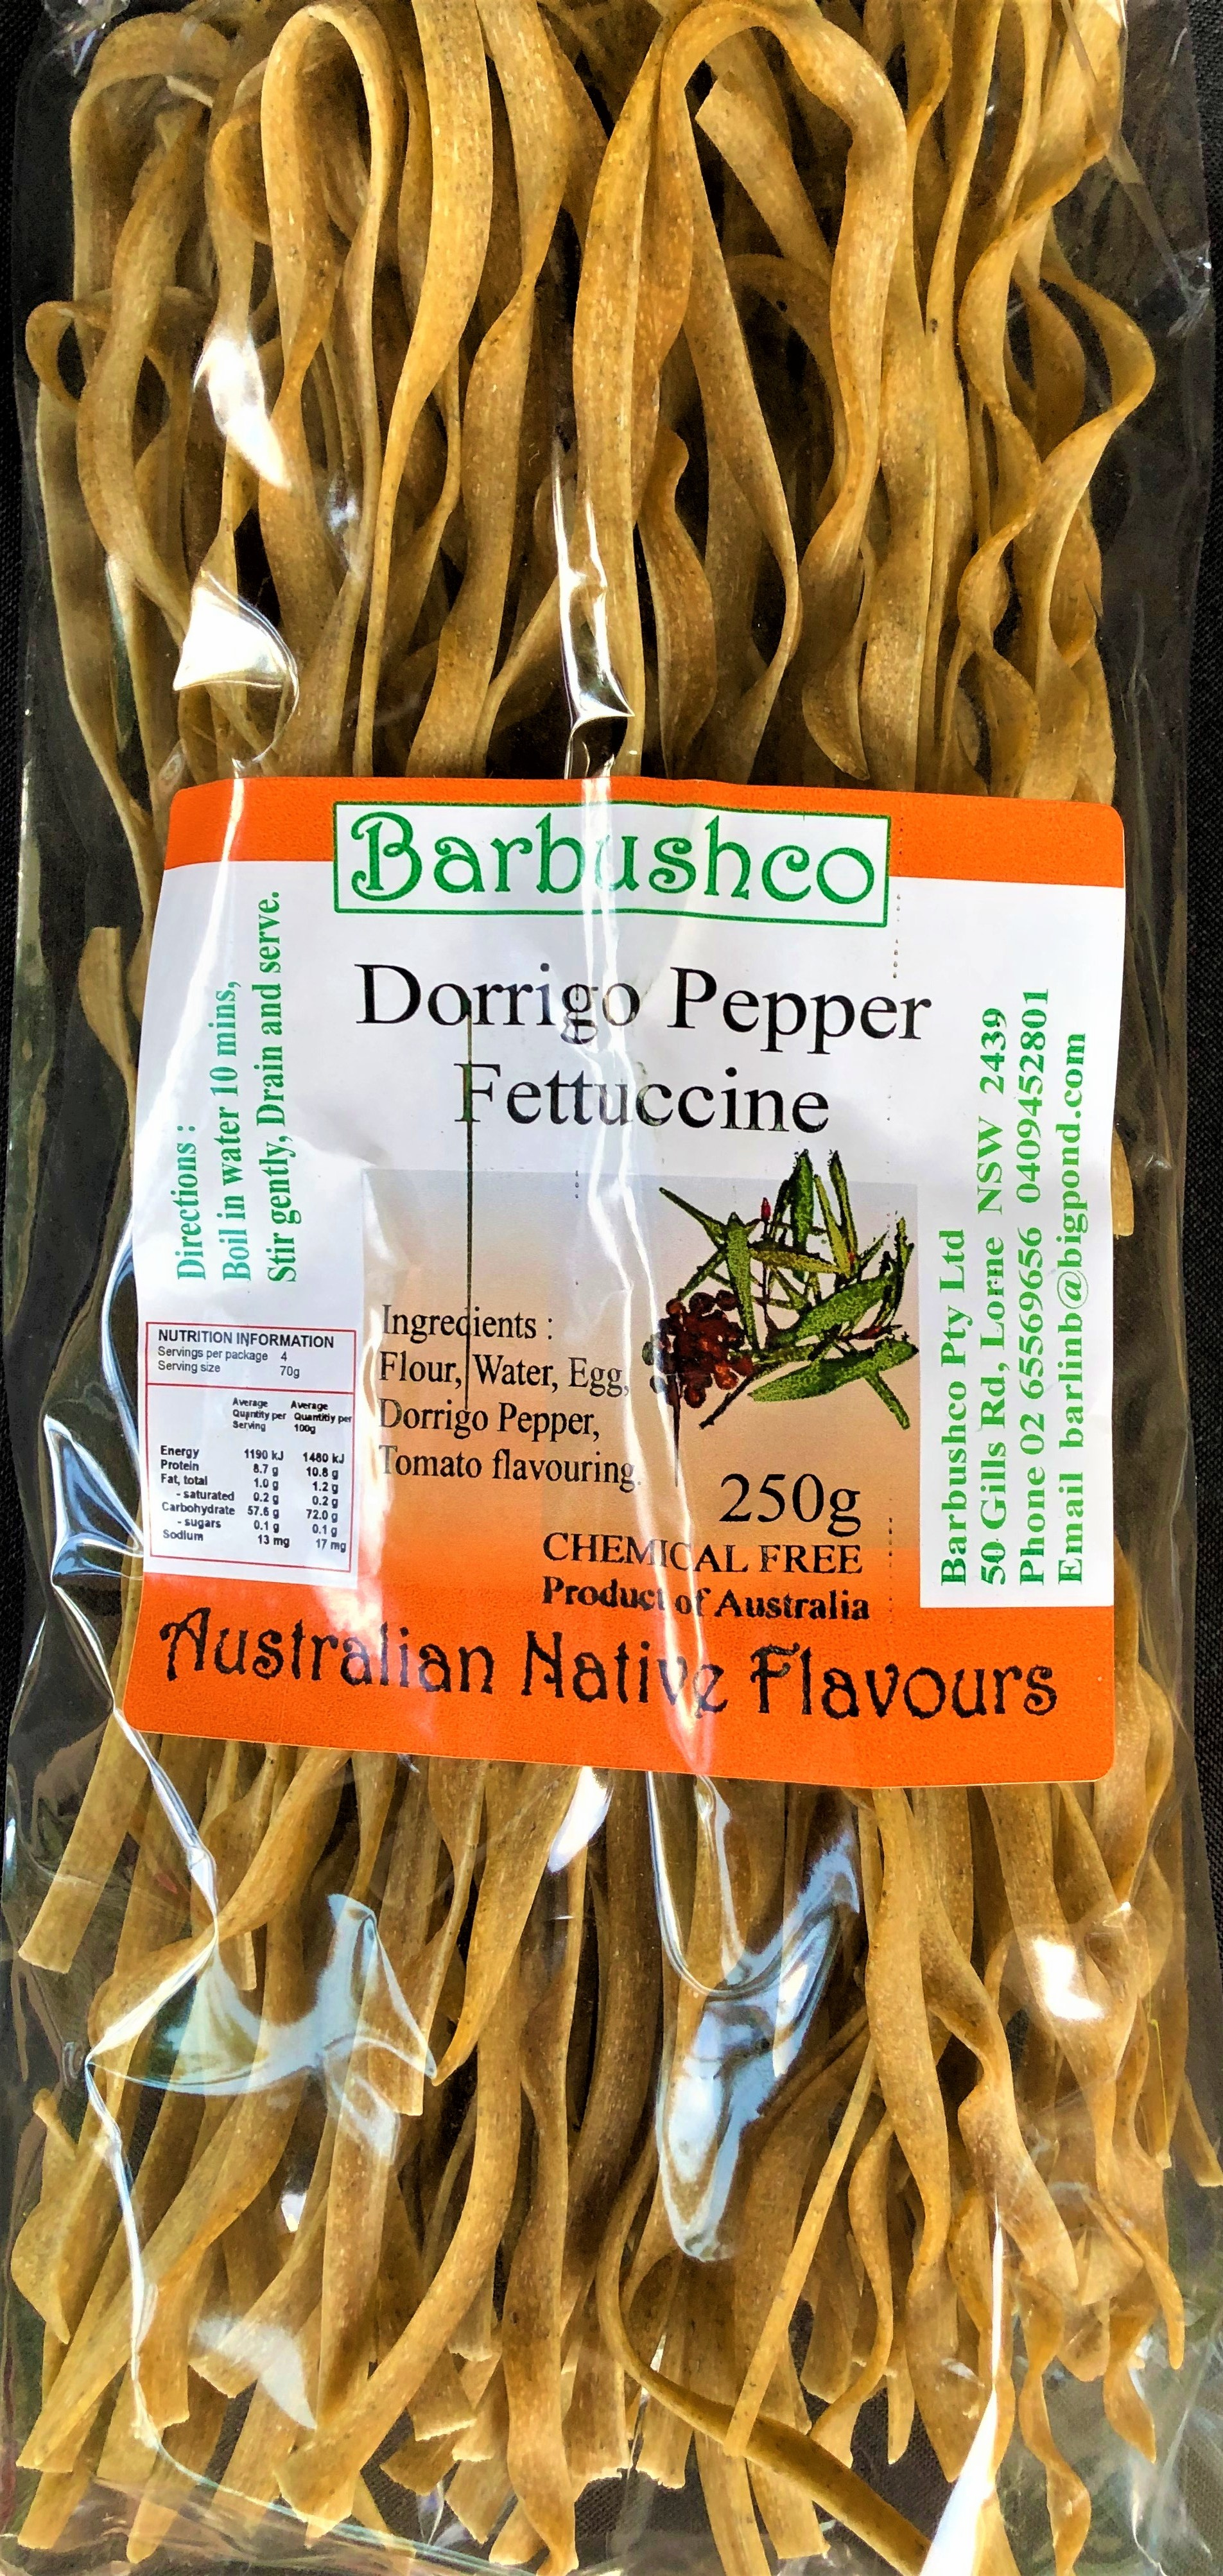 Dorrigo Pepper Fettuccine - Dorrigo Pepper is an Australian leaf pepper with a medium to hot flavour. This infused fettuccine is best served with tomato based sauces, such as bolognese.